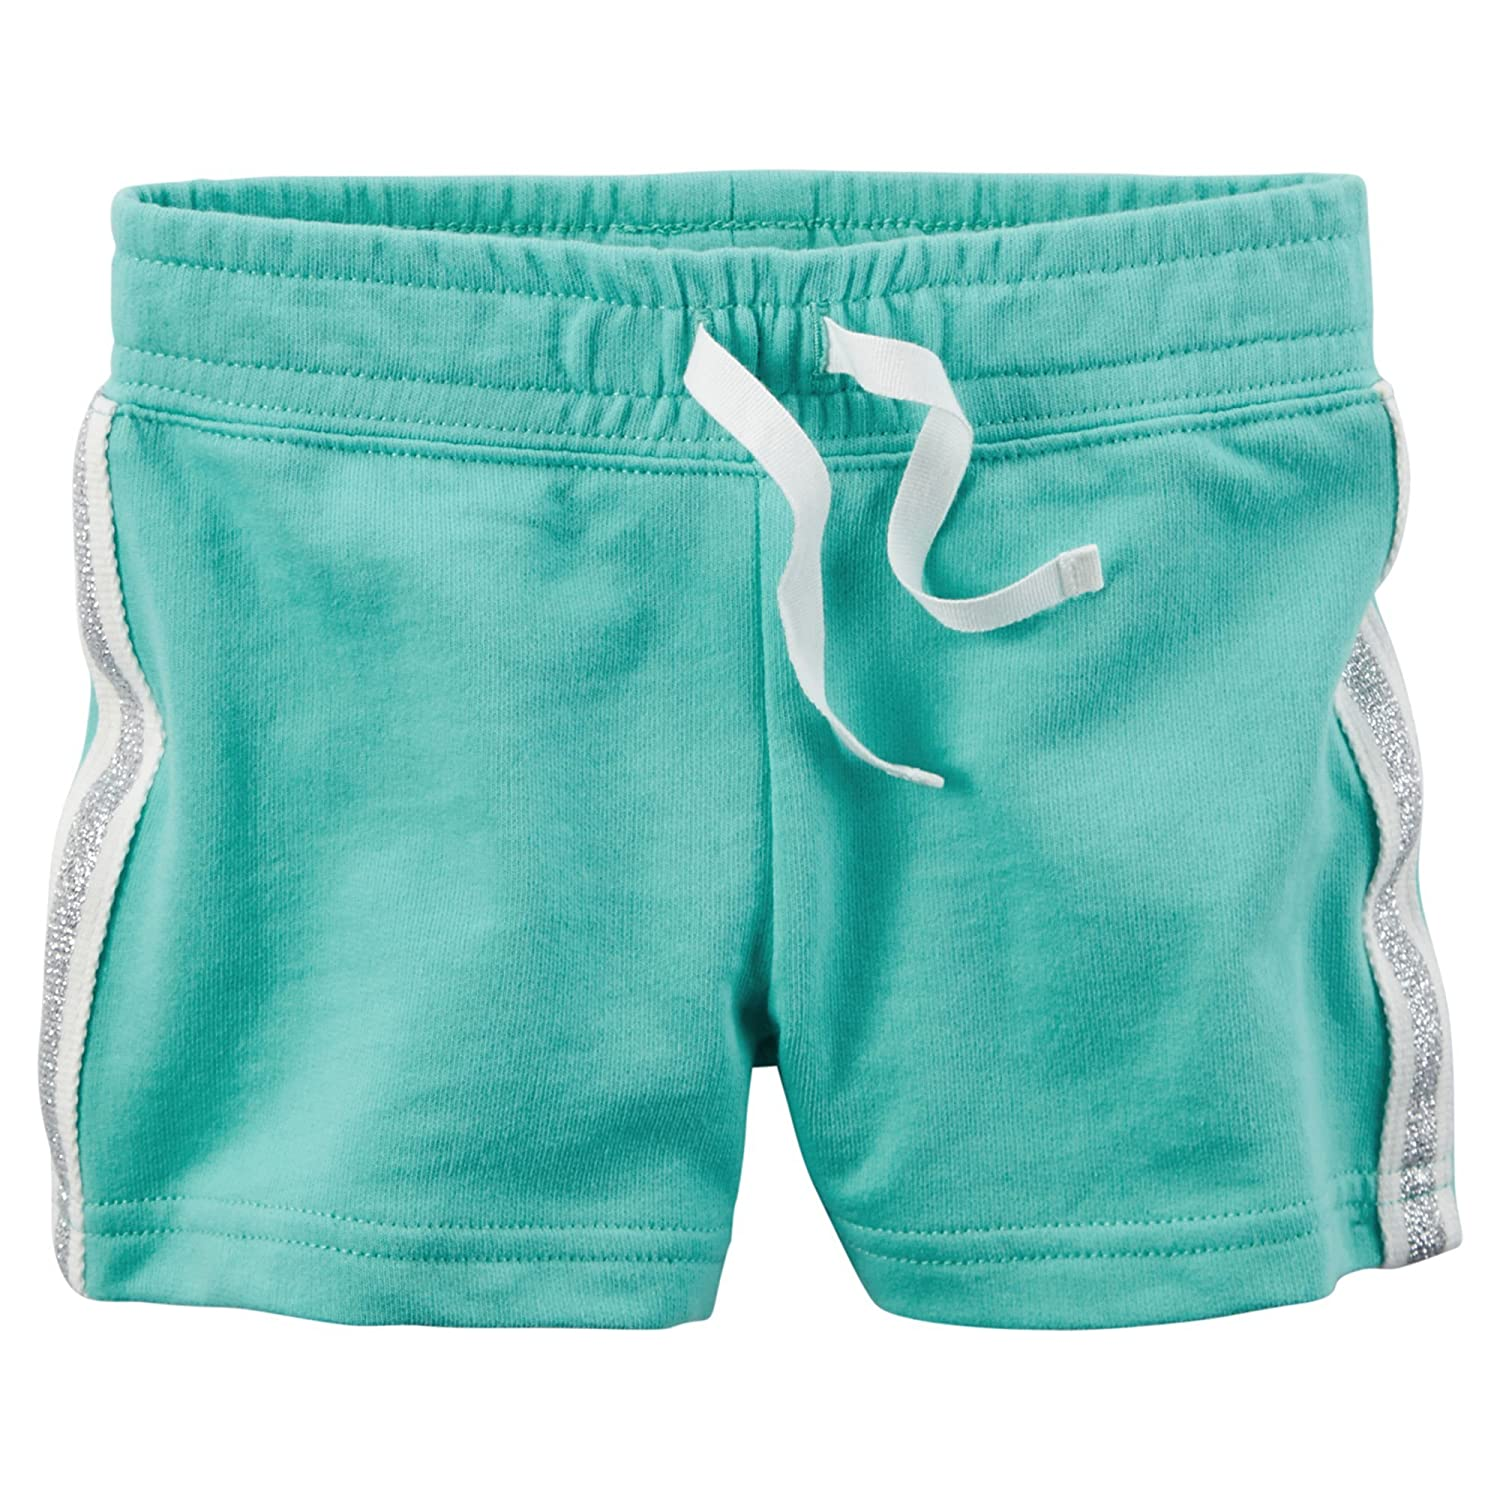 Carters Baby Girls French Terry Shorts 9 Months, Turquoise